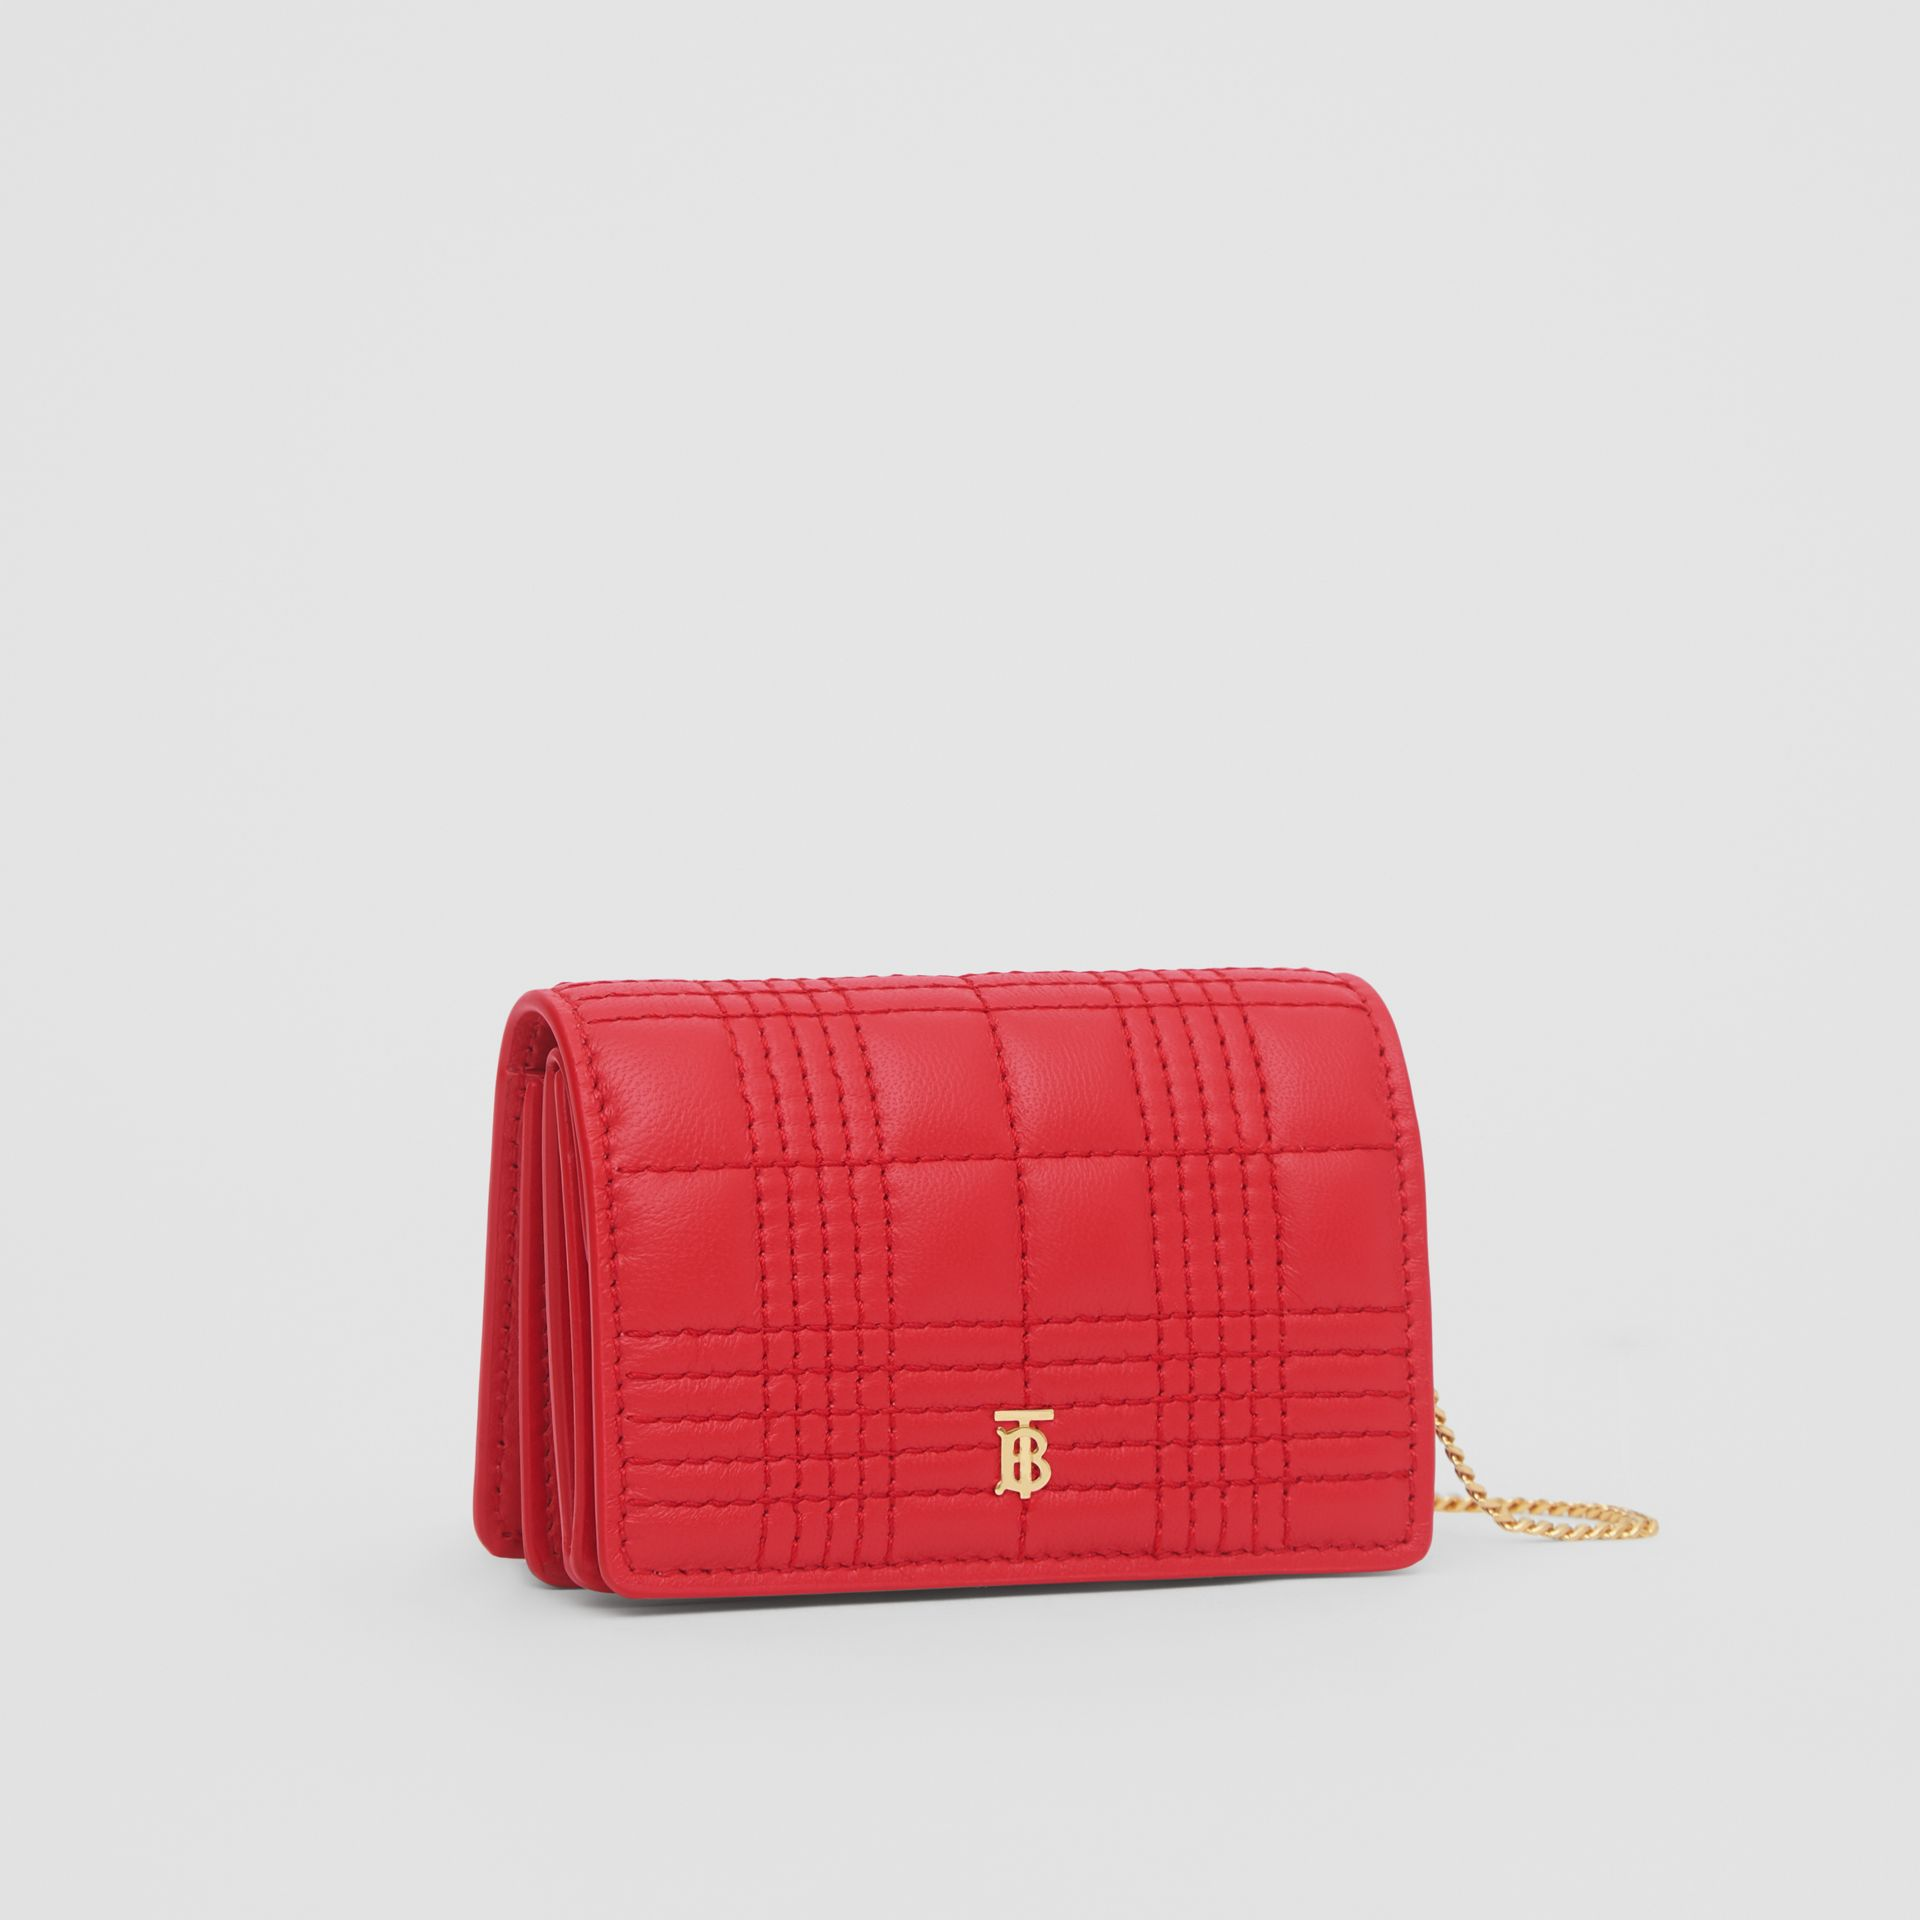 Porte-cartes en cuir d'agneau matelassé avec sangle amovible (Rouge Vif) | Burberry Canada - photo de la galerie 8